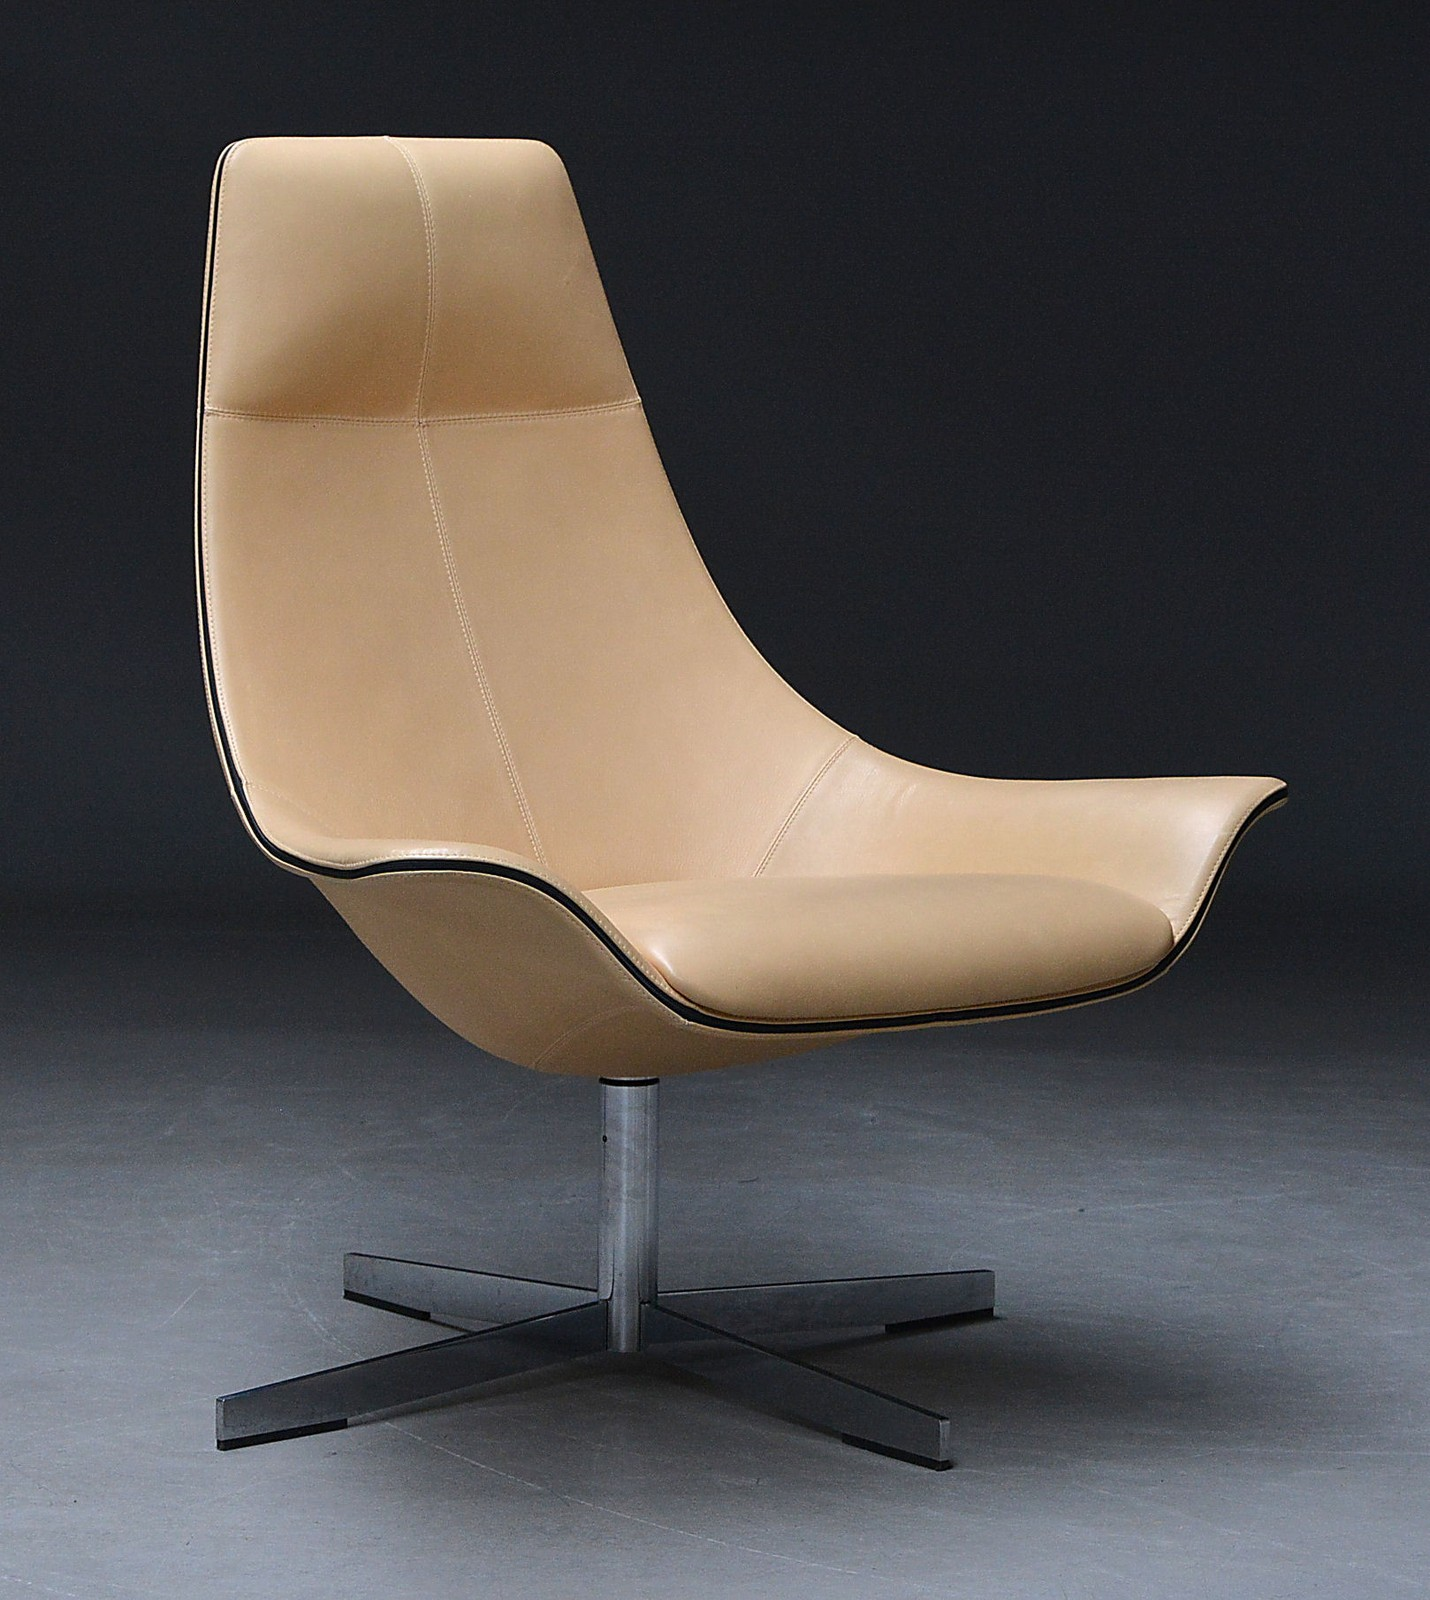 Rodolfo Dordoni For Matteo Grassi. Lounge Chair Upholstered In Light  Leather, Model 2Leather | Lauritz.com